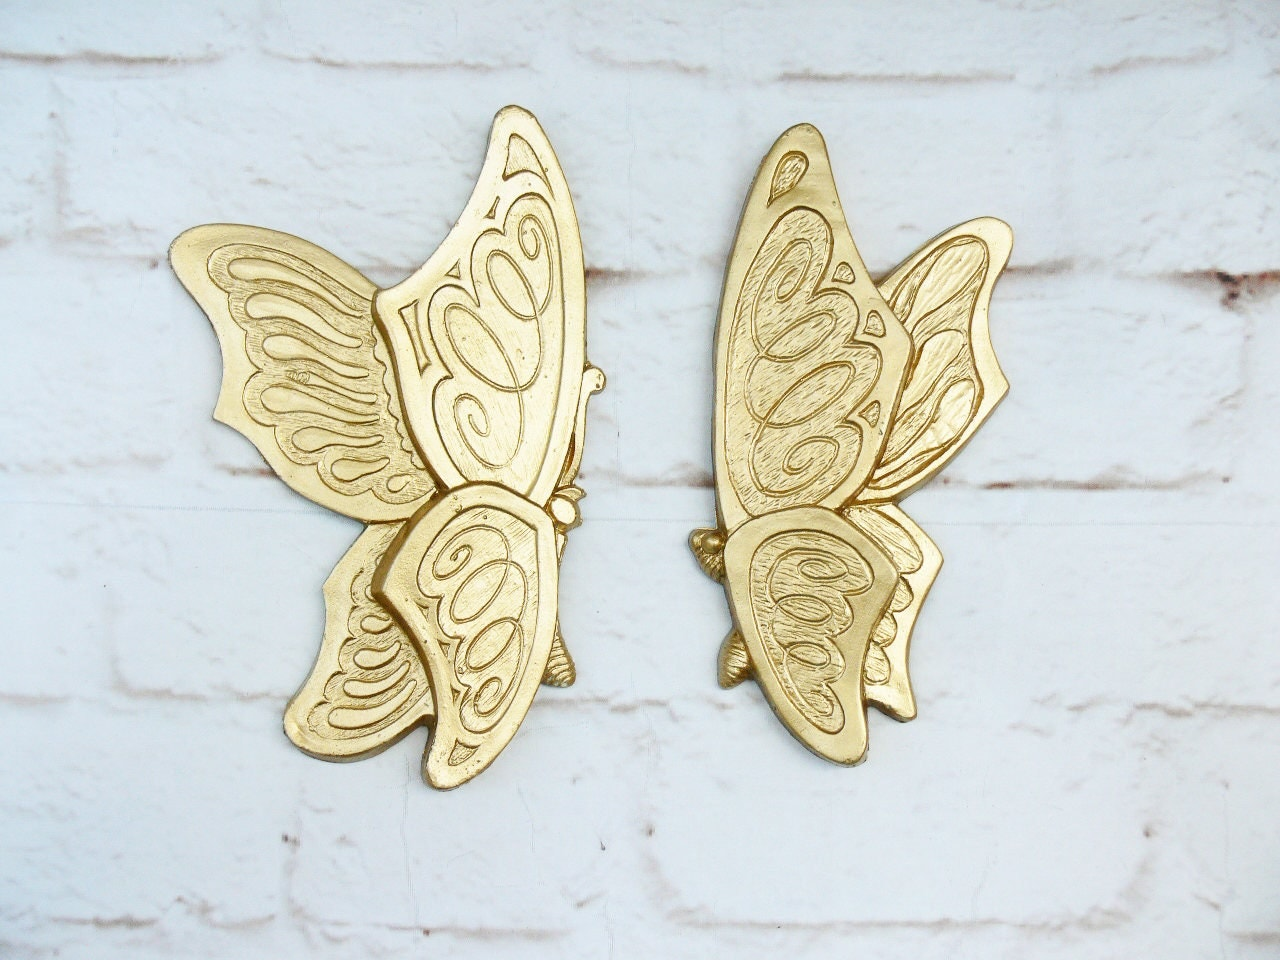 Unique Butterfly Wall Decorations Metal Images - Wall Art ...